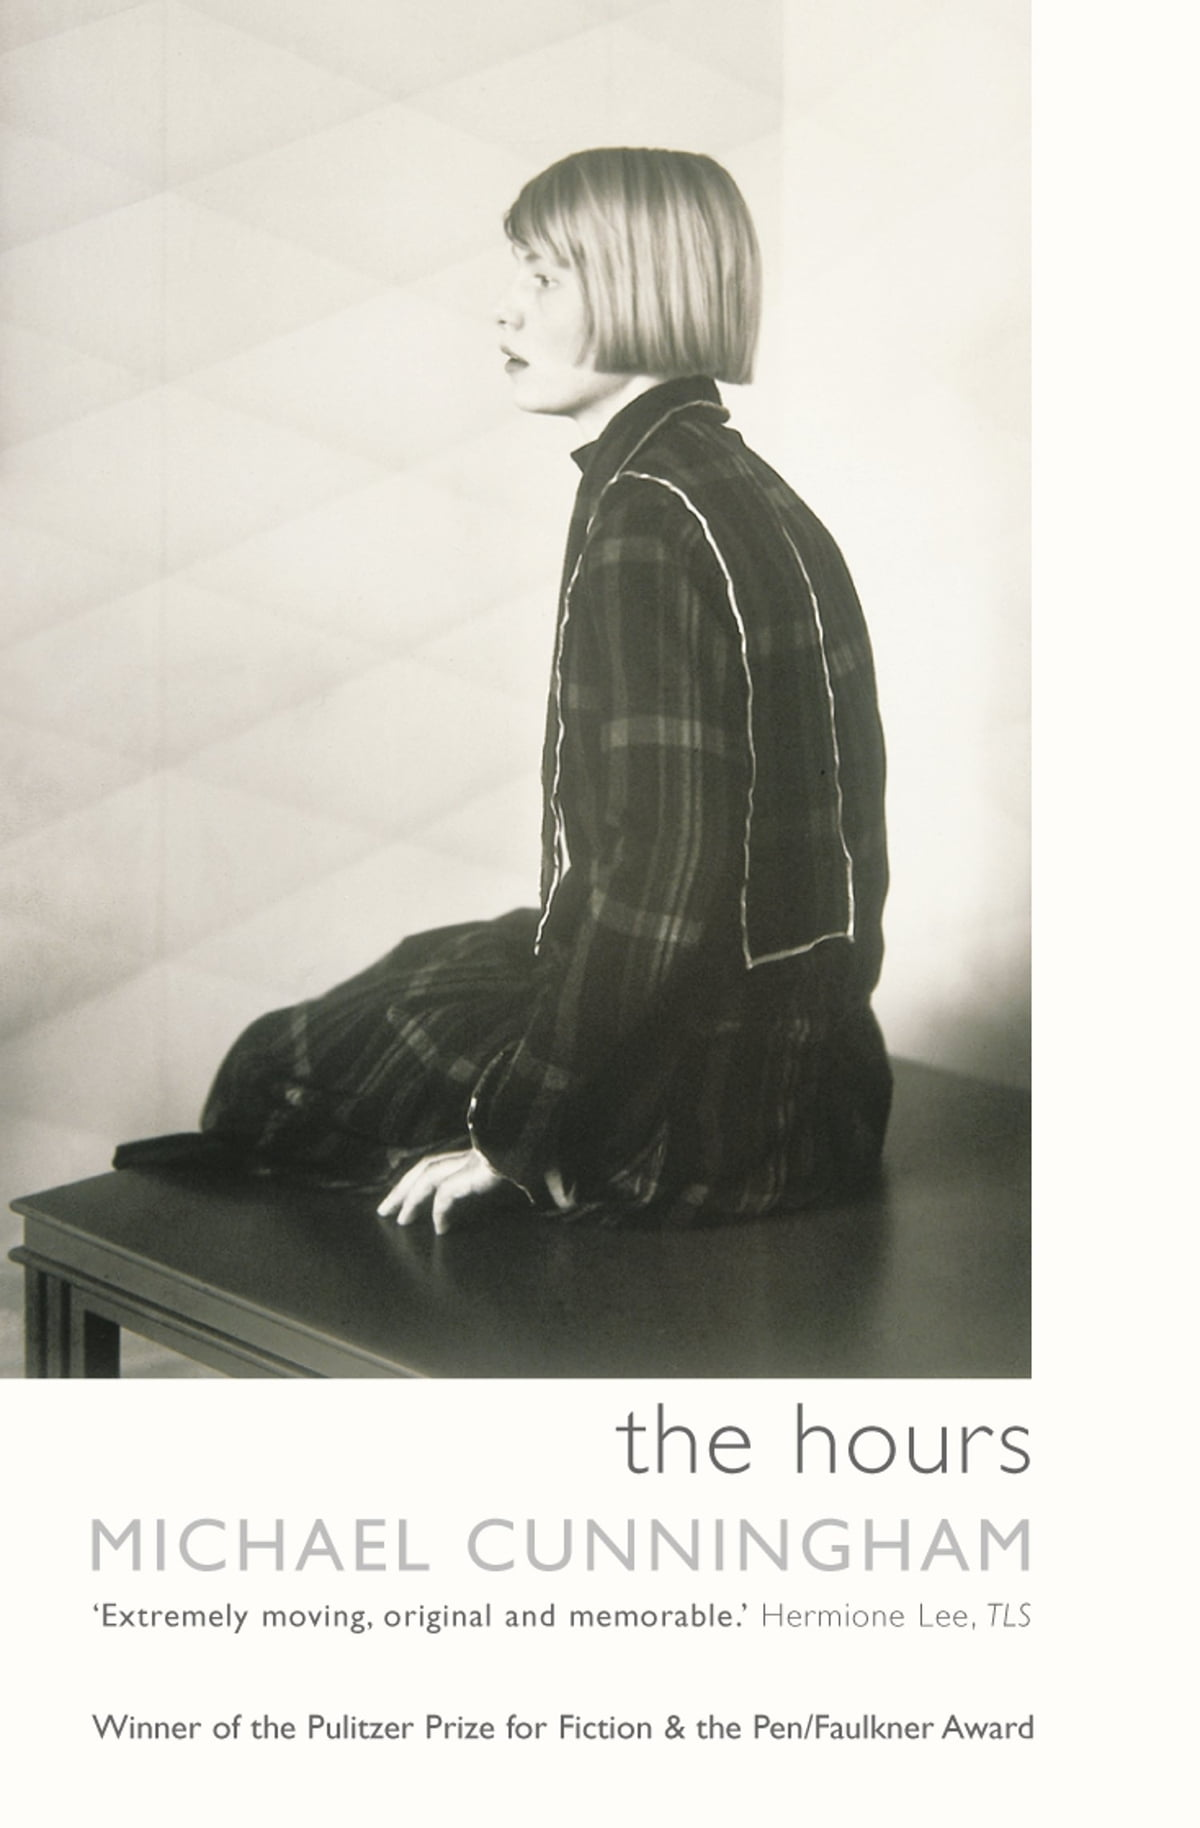 the hours michael cunningham free ebook